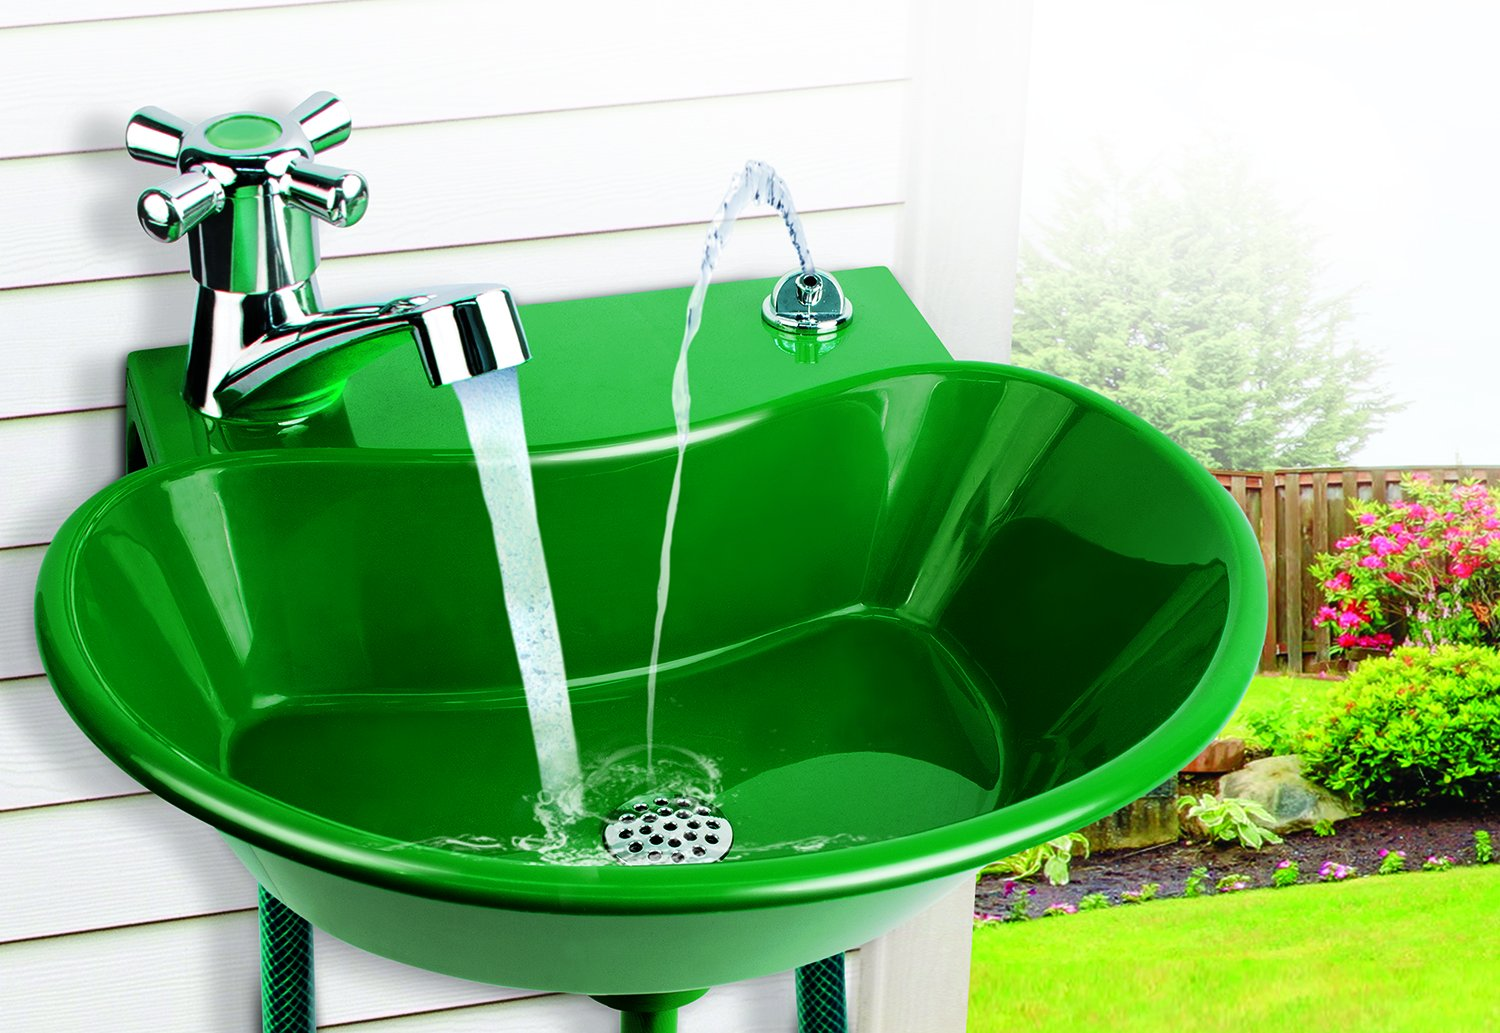 Amazon.com : 2 IN 1 OUTDOOR SINK AND DRINKING FOUNTAIN : Garden ...